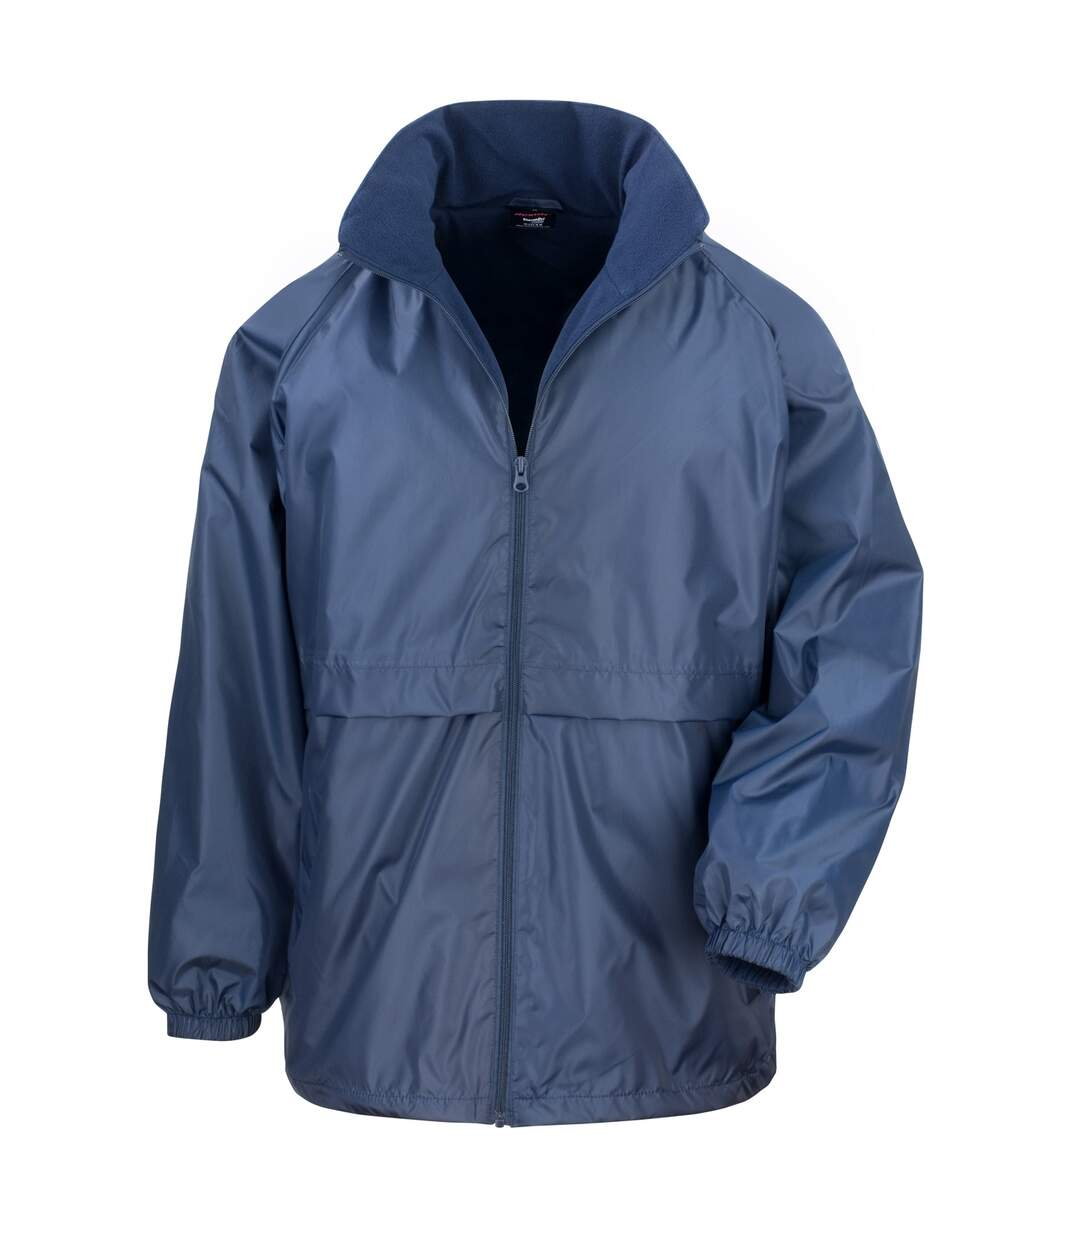 Result Mens Core Adult DWL Jacket (With Fold Away Hood) (Royal) - UTBC896